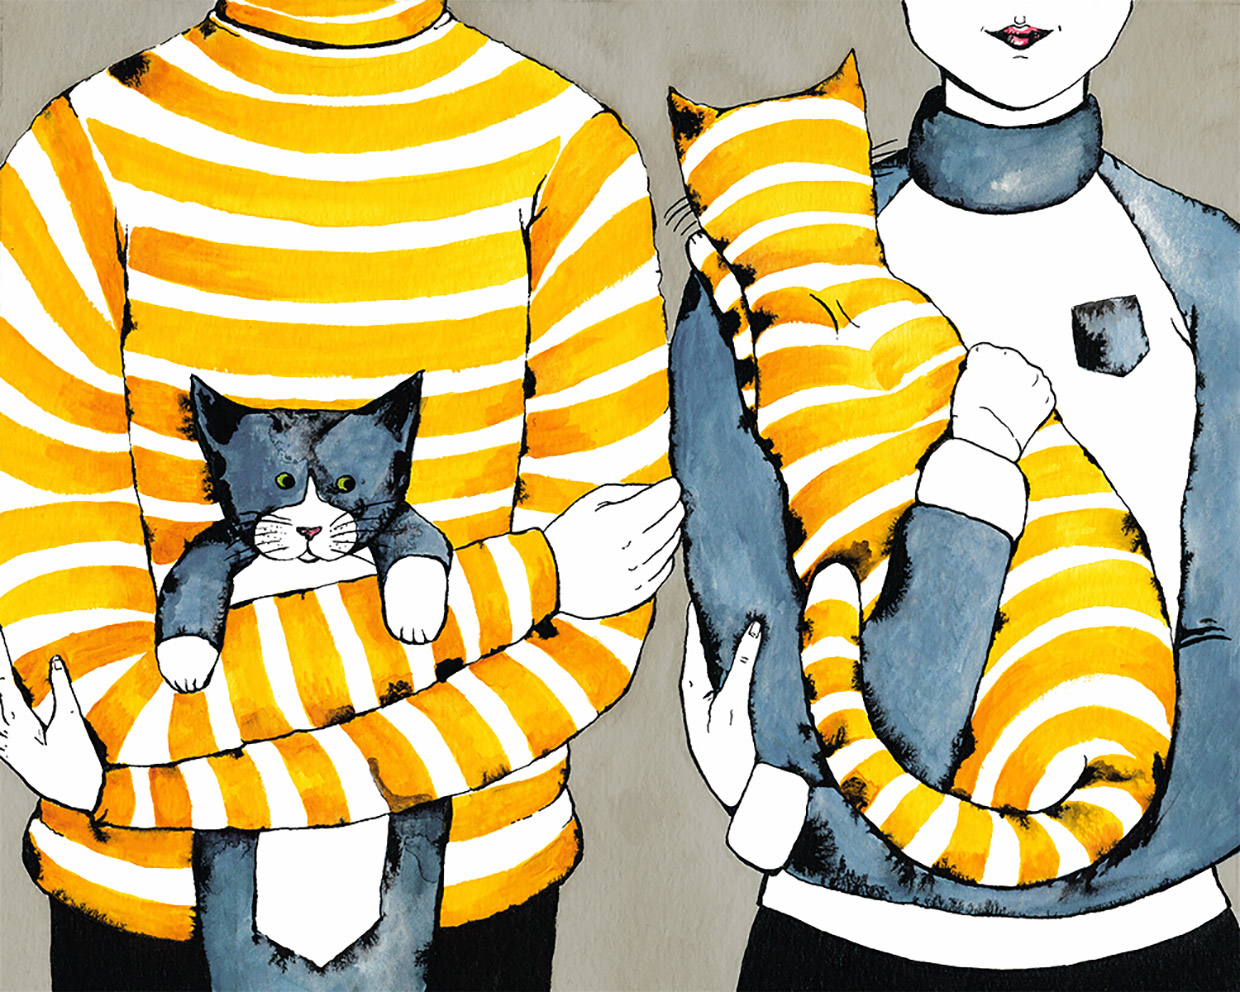 Sweater Opposites (Family Portrait)